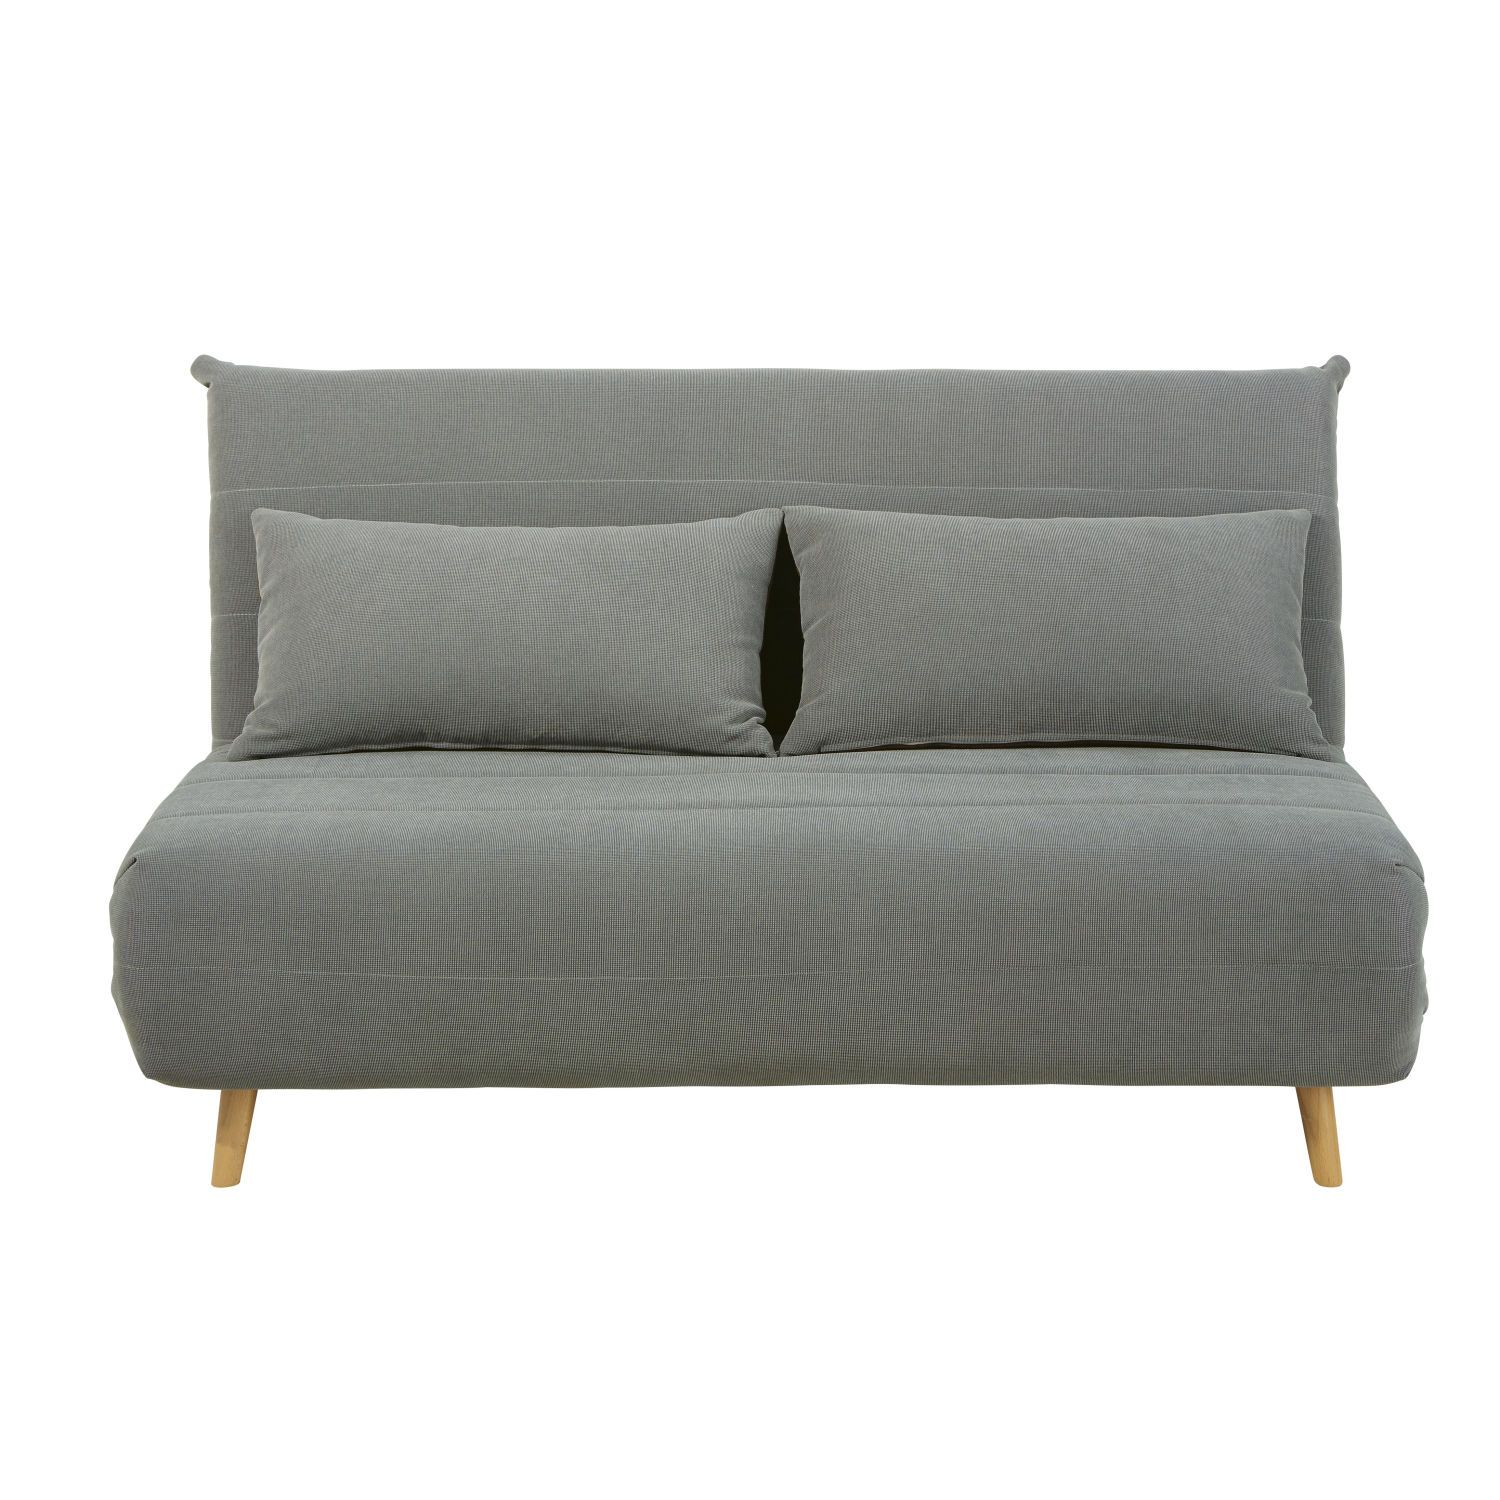 Mustard Yellow Double Day Bed Sofa Maisons Du Monde Divano